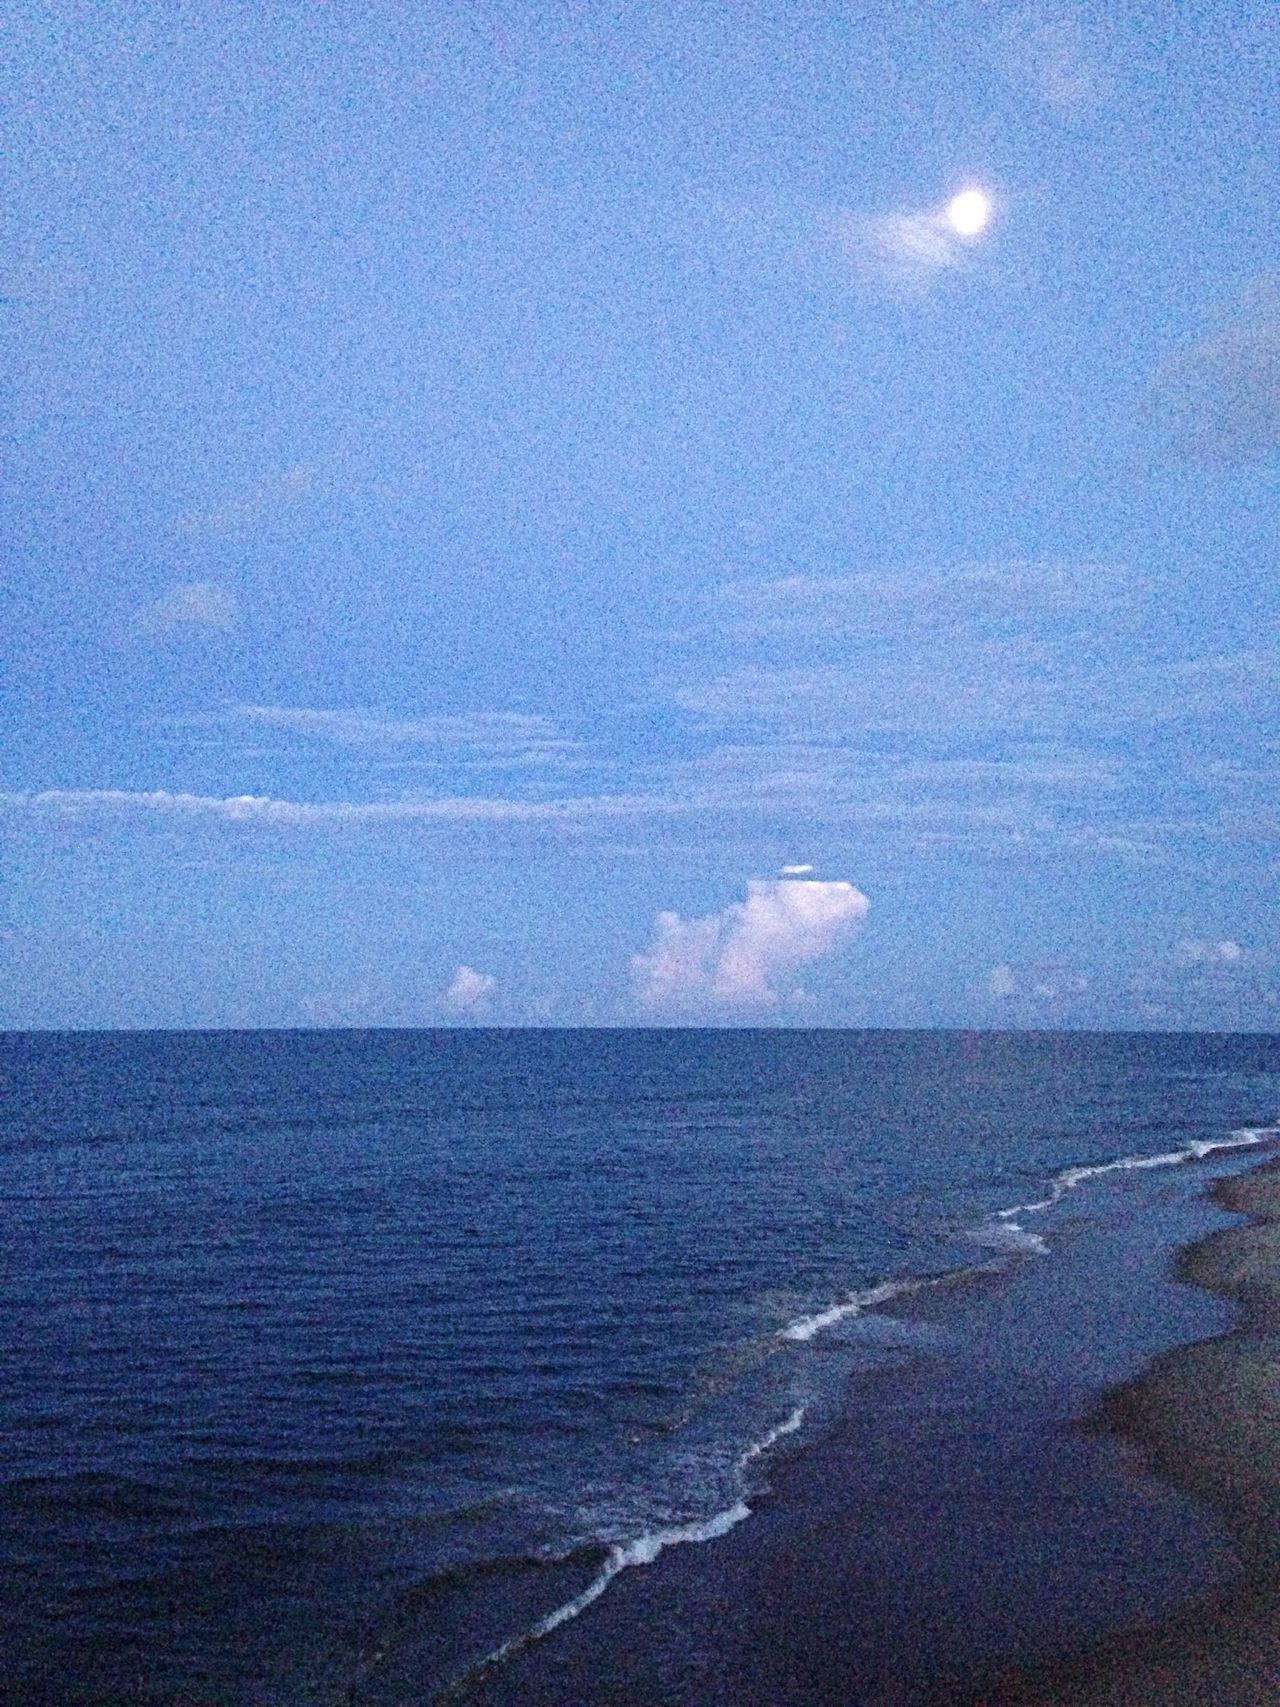 Getting darker at Jennette's Pier. OBX14 Moon Water Beach